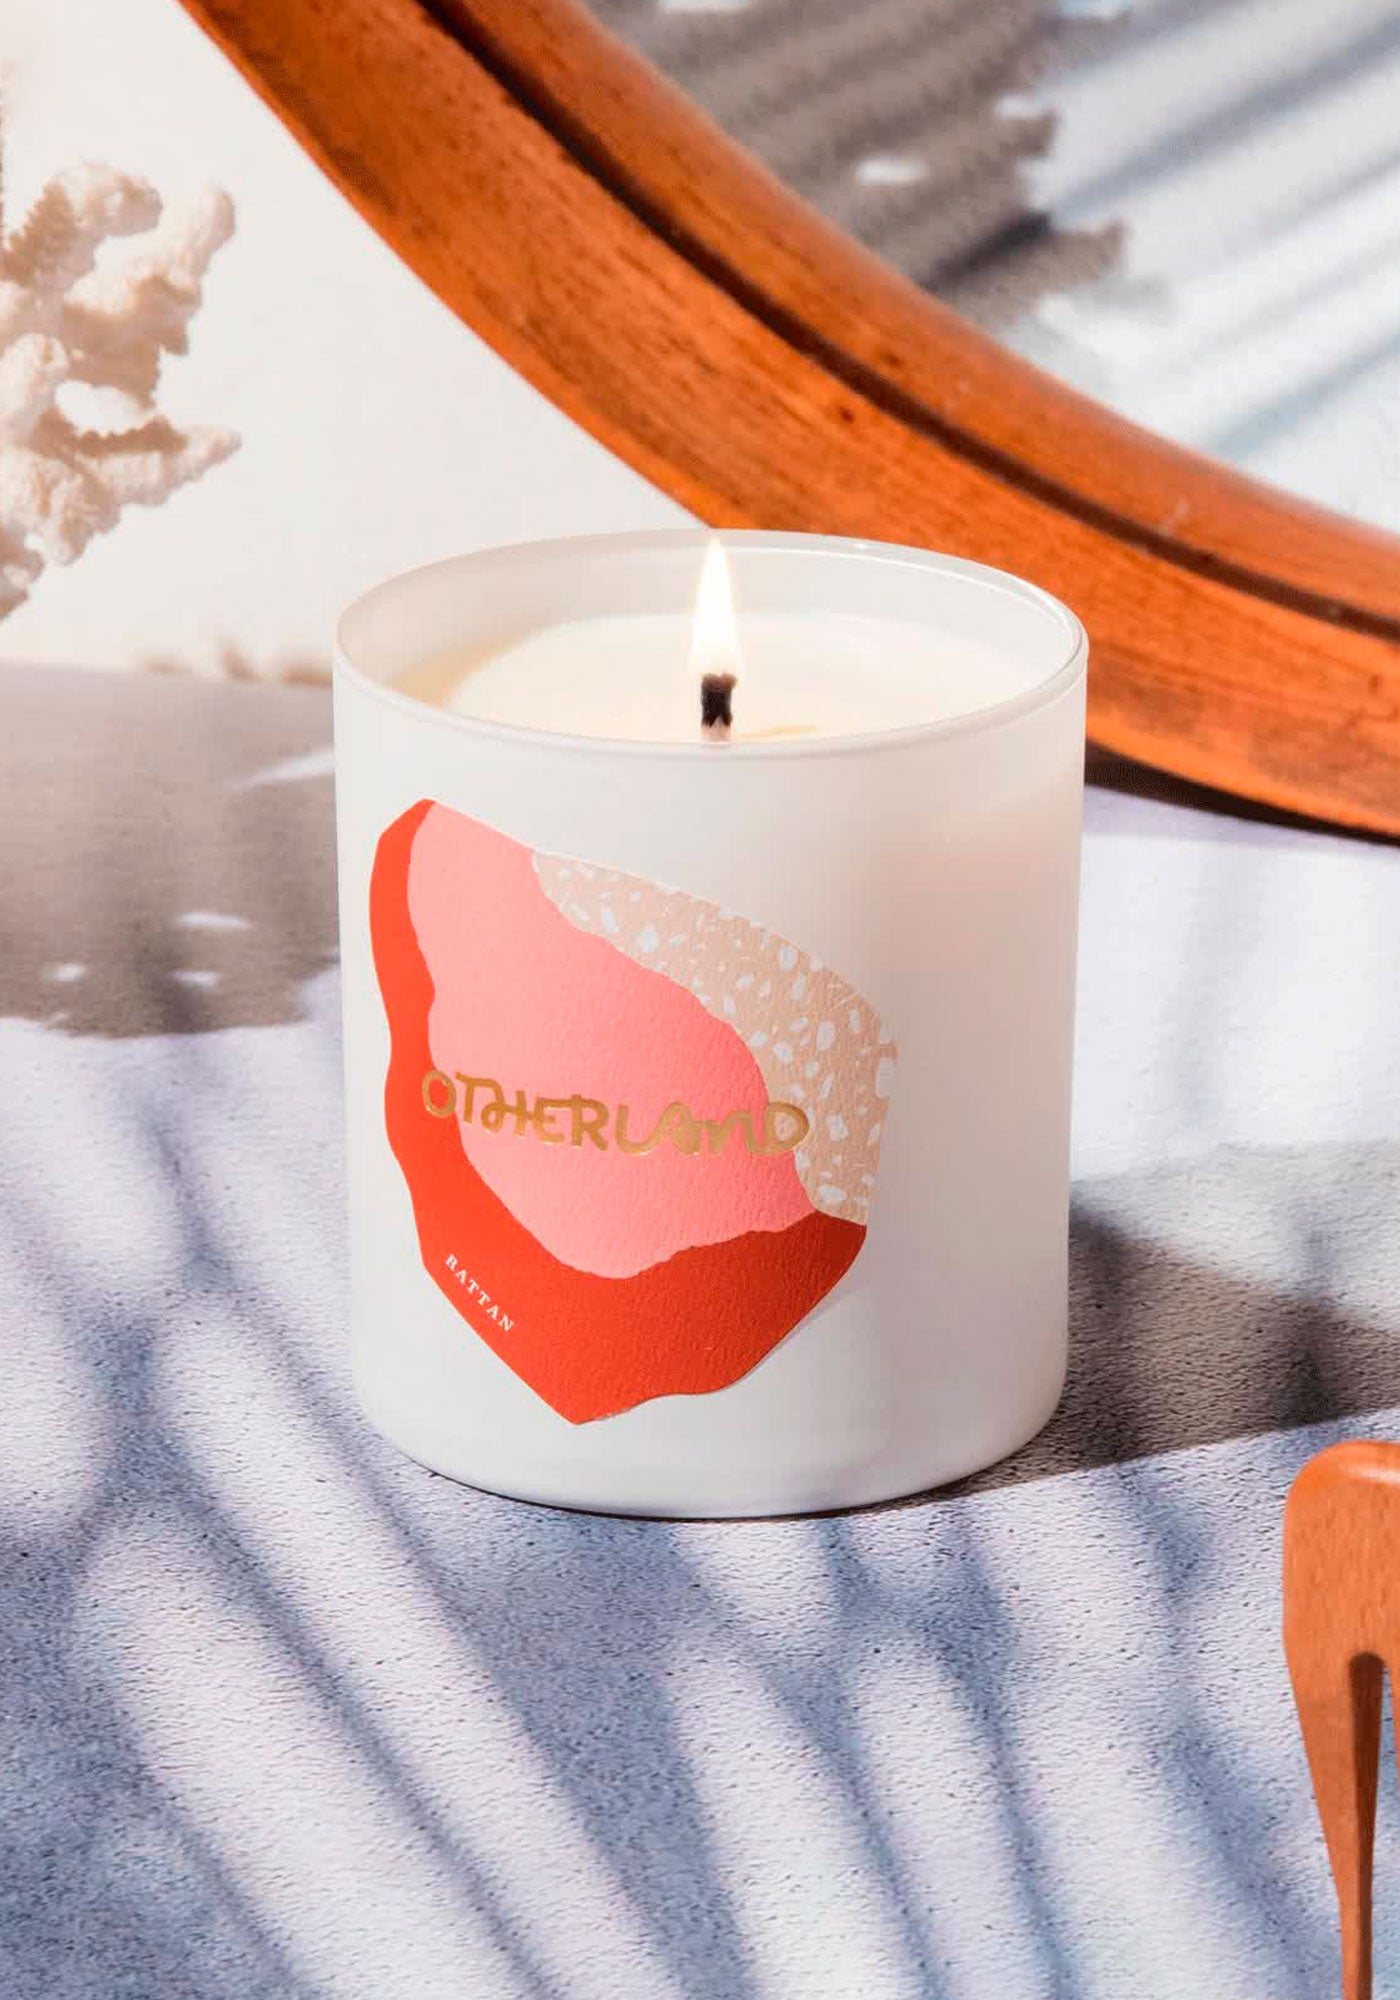 7 Candles That Will Make Your Home Feel Cosy & Cool Instantly